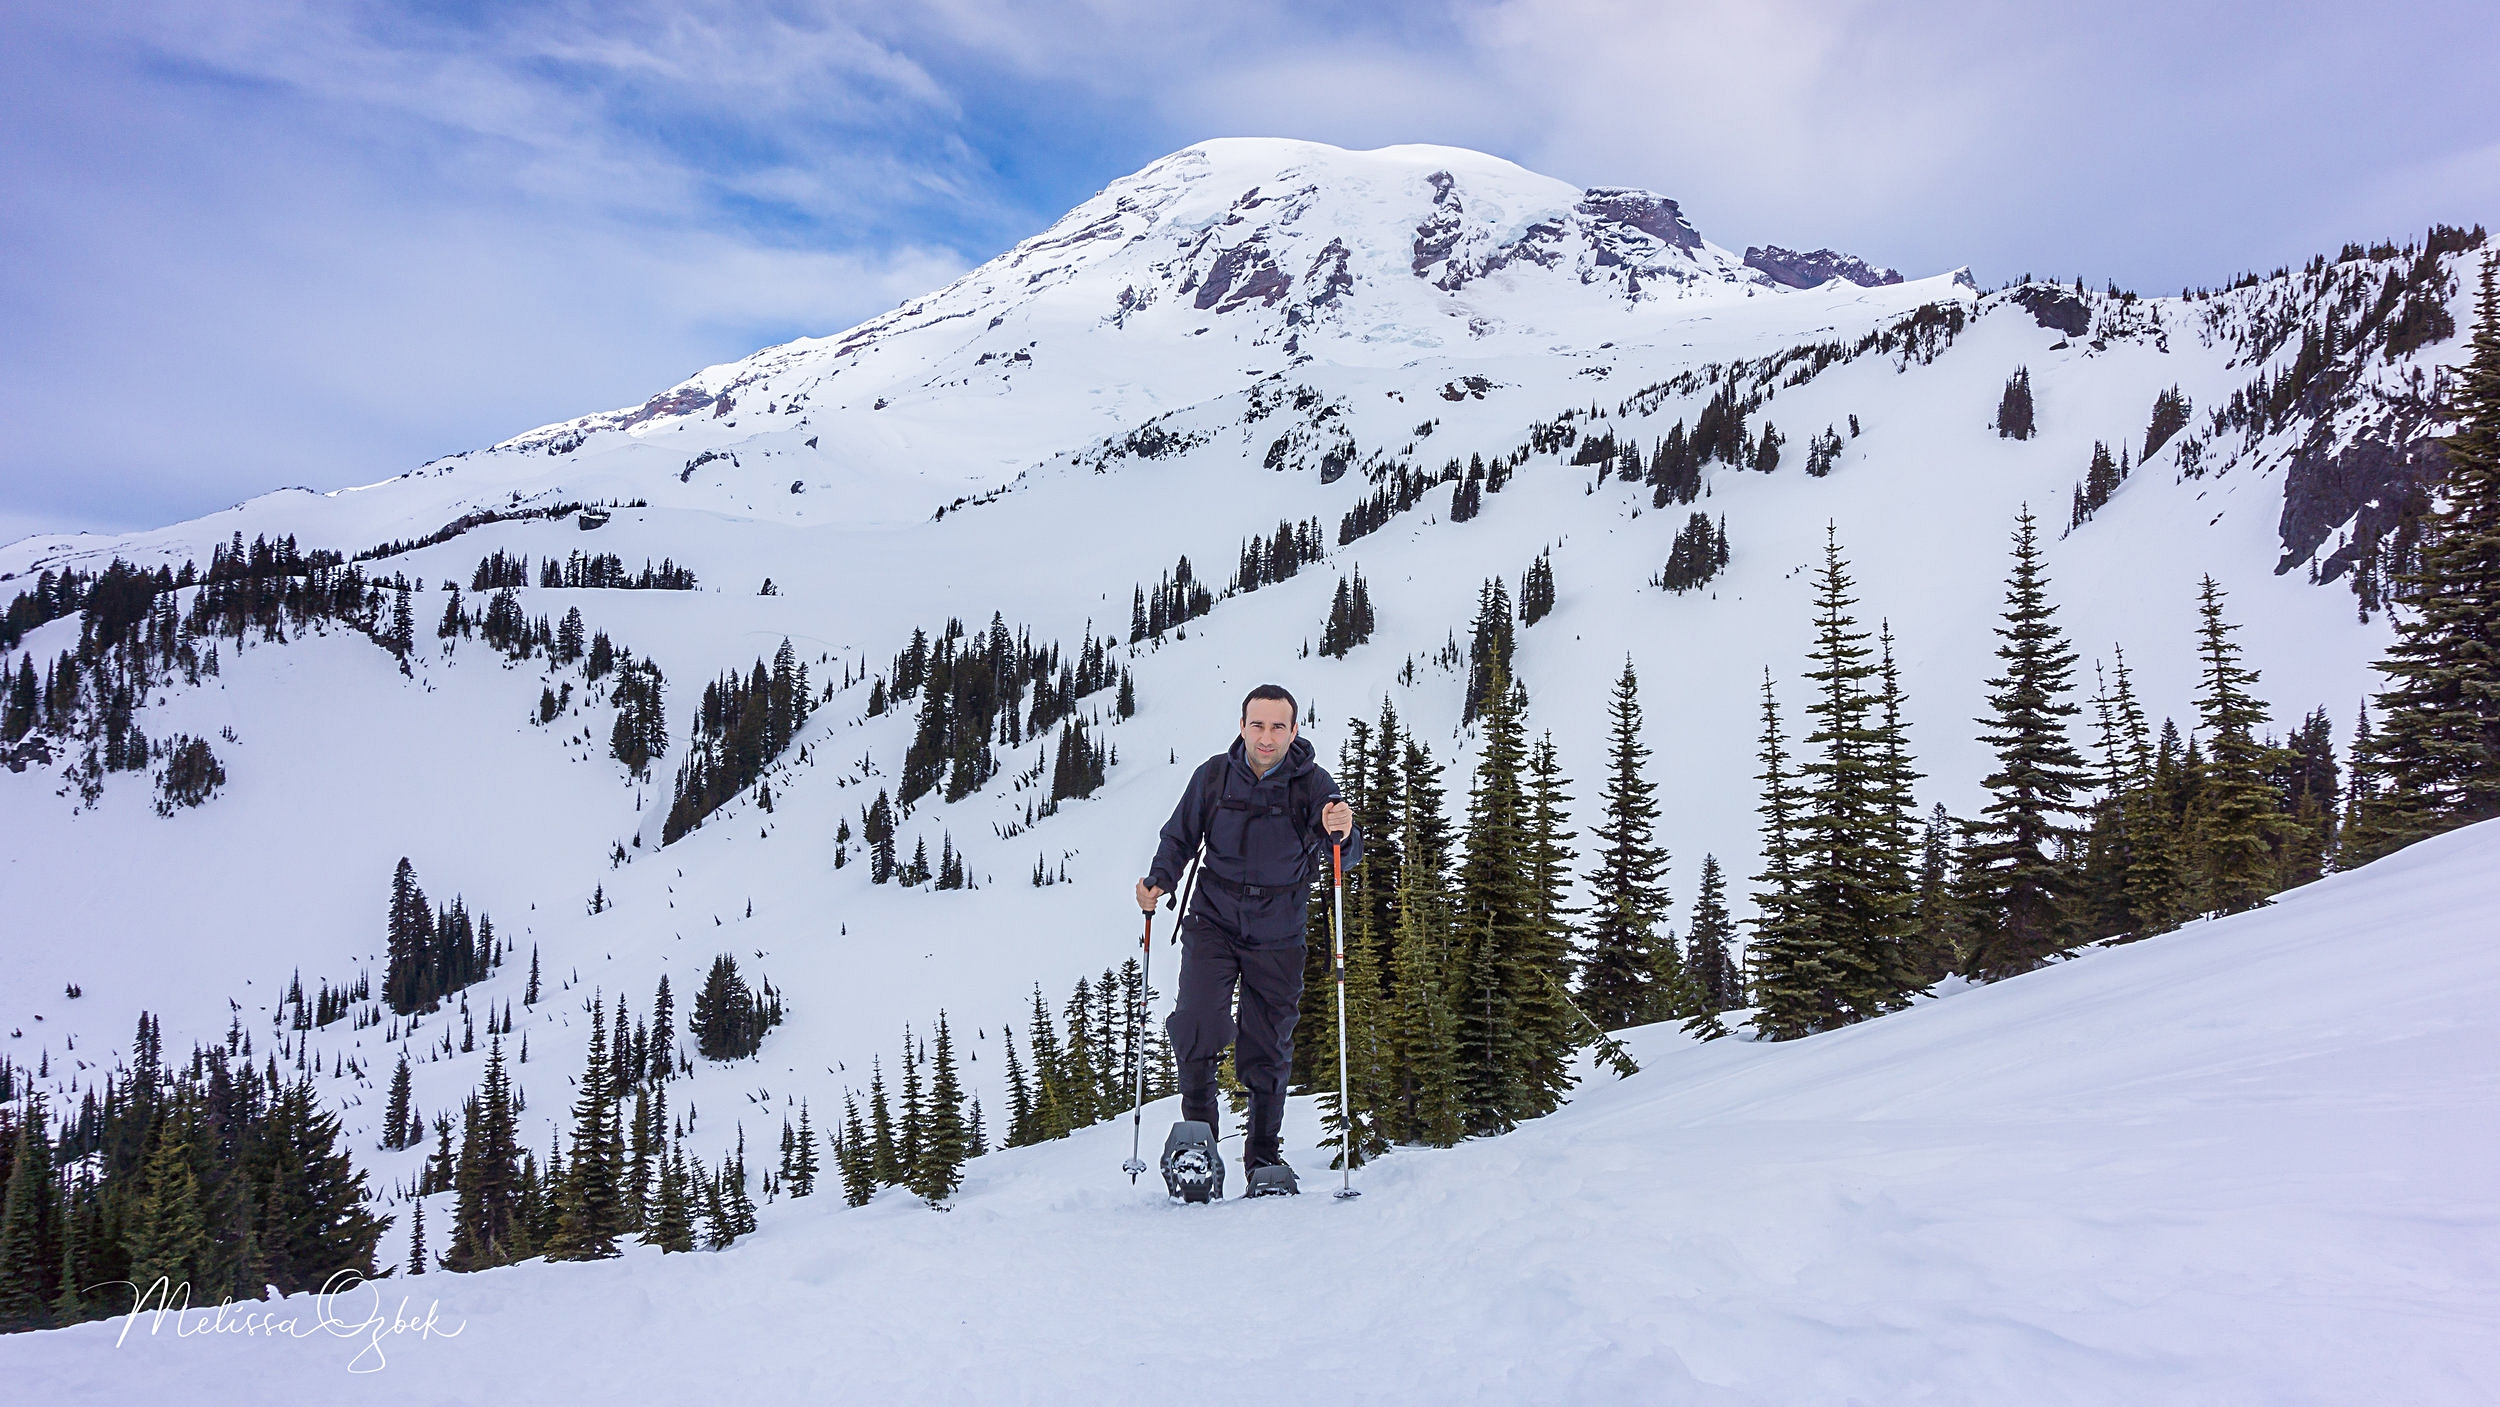 Onur snowshoes the 4th Crossing to Mazama Ridge. Mount Rainier in the background.